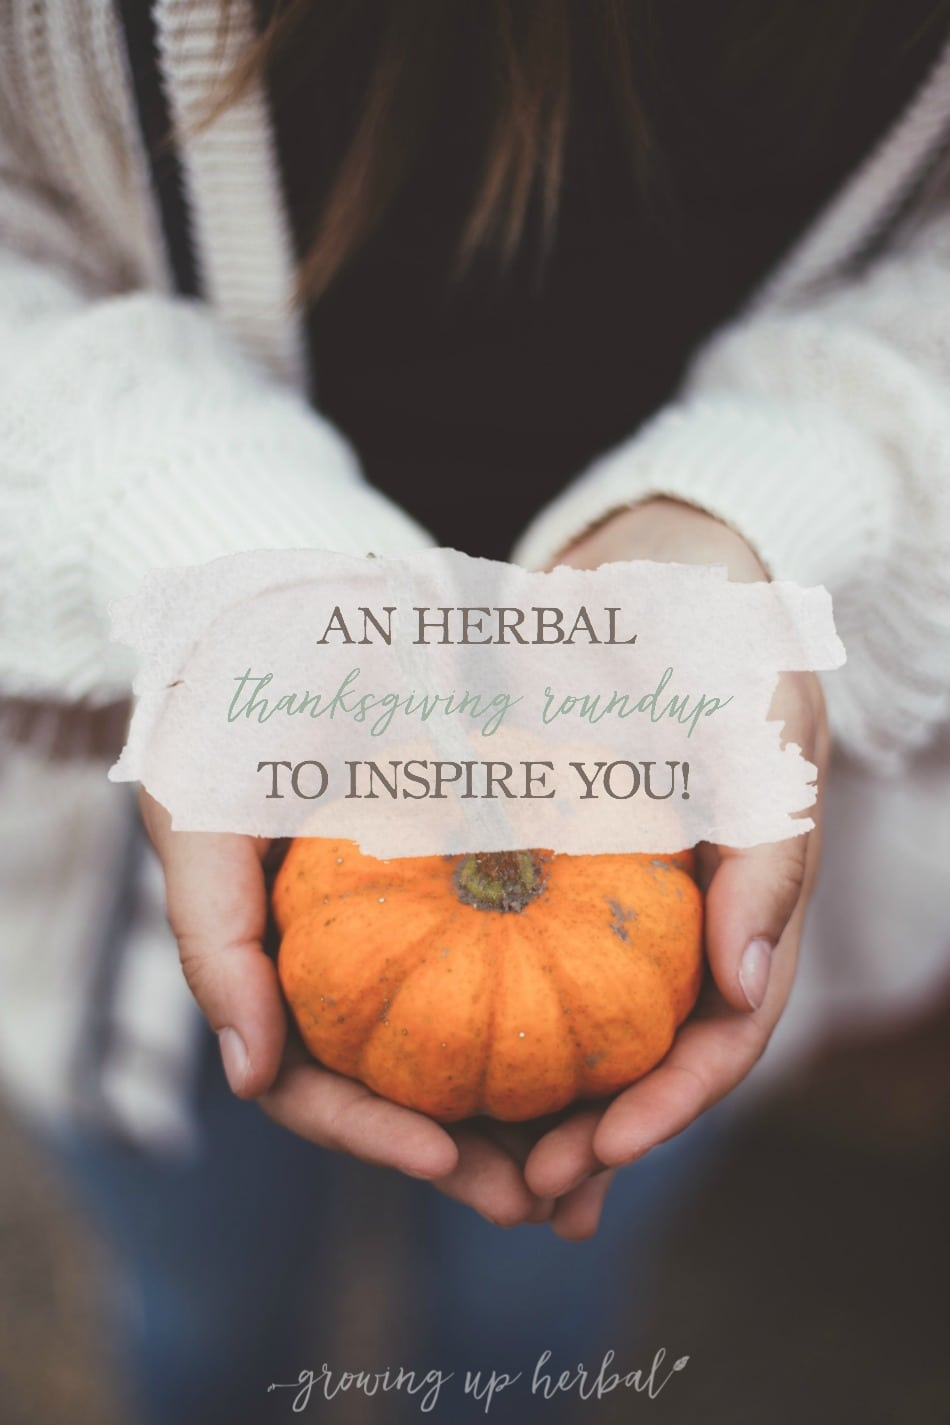 An Herbal Thanksgiving Roundup To Inspire You | Growing Up Herbal | Herbs are easy to incorporate into your autumn festivities from food to drinks to table decor and gifts. Here are some ideas to inspire you this season!